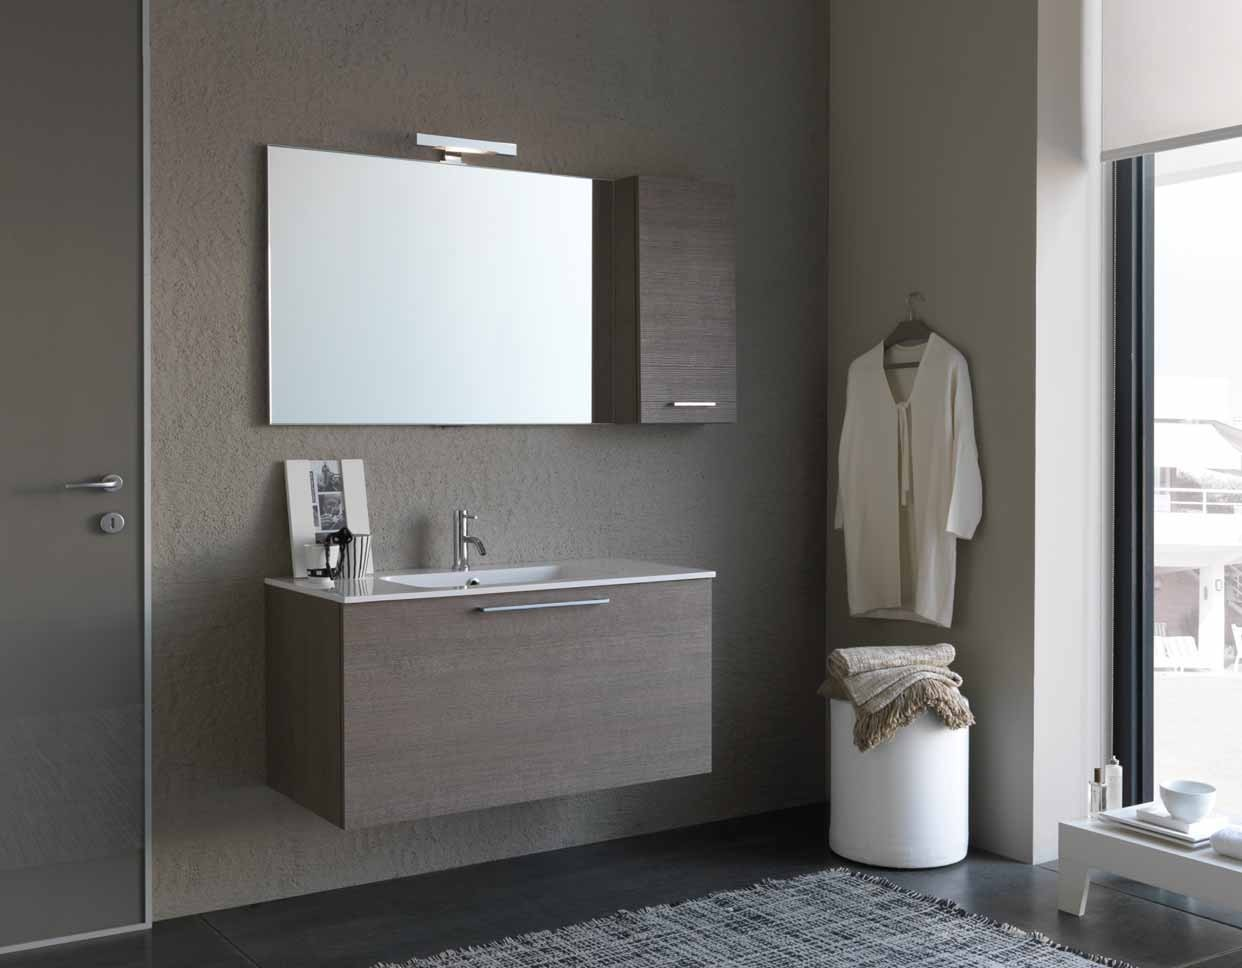 Mobile Bagno Pensile ~ avienix.com for .